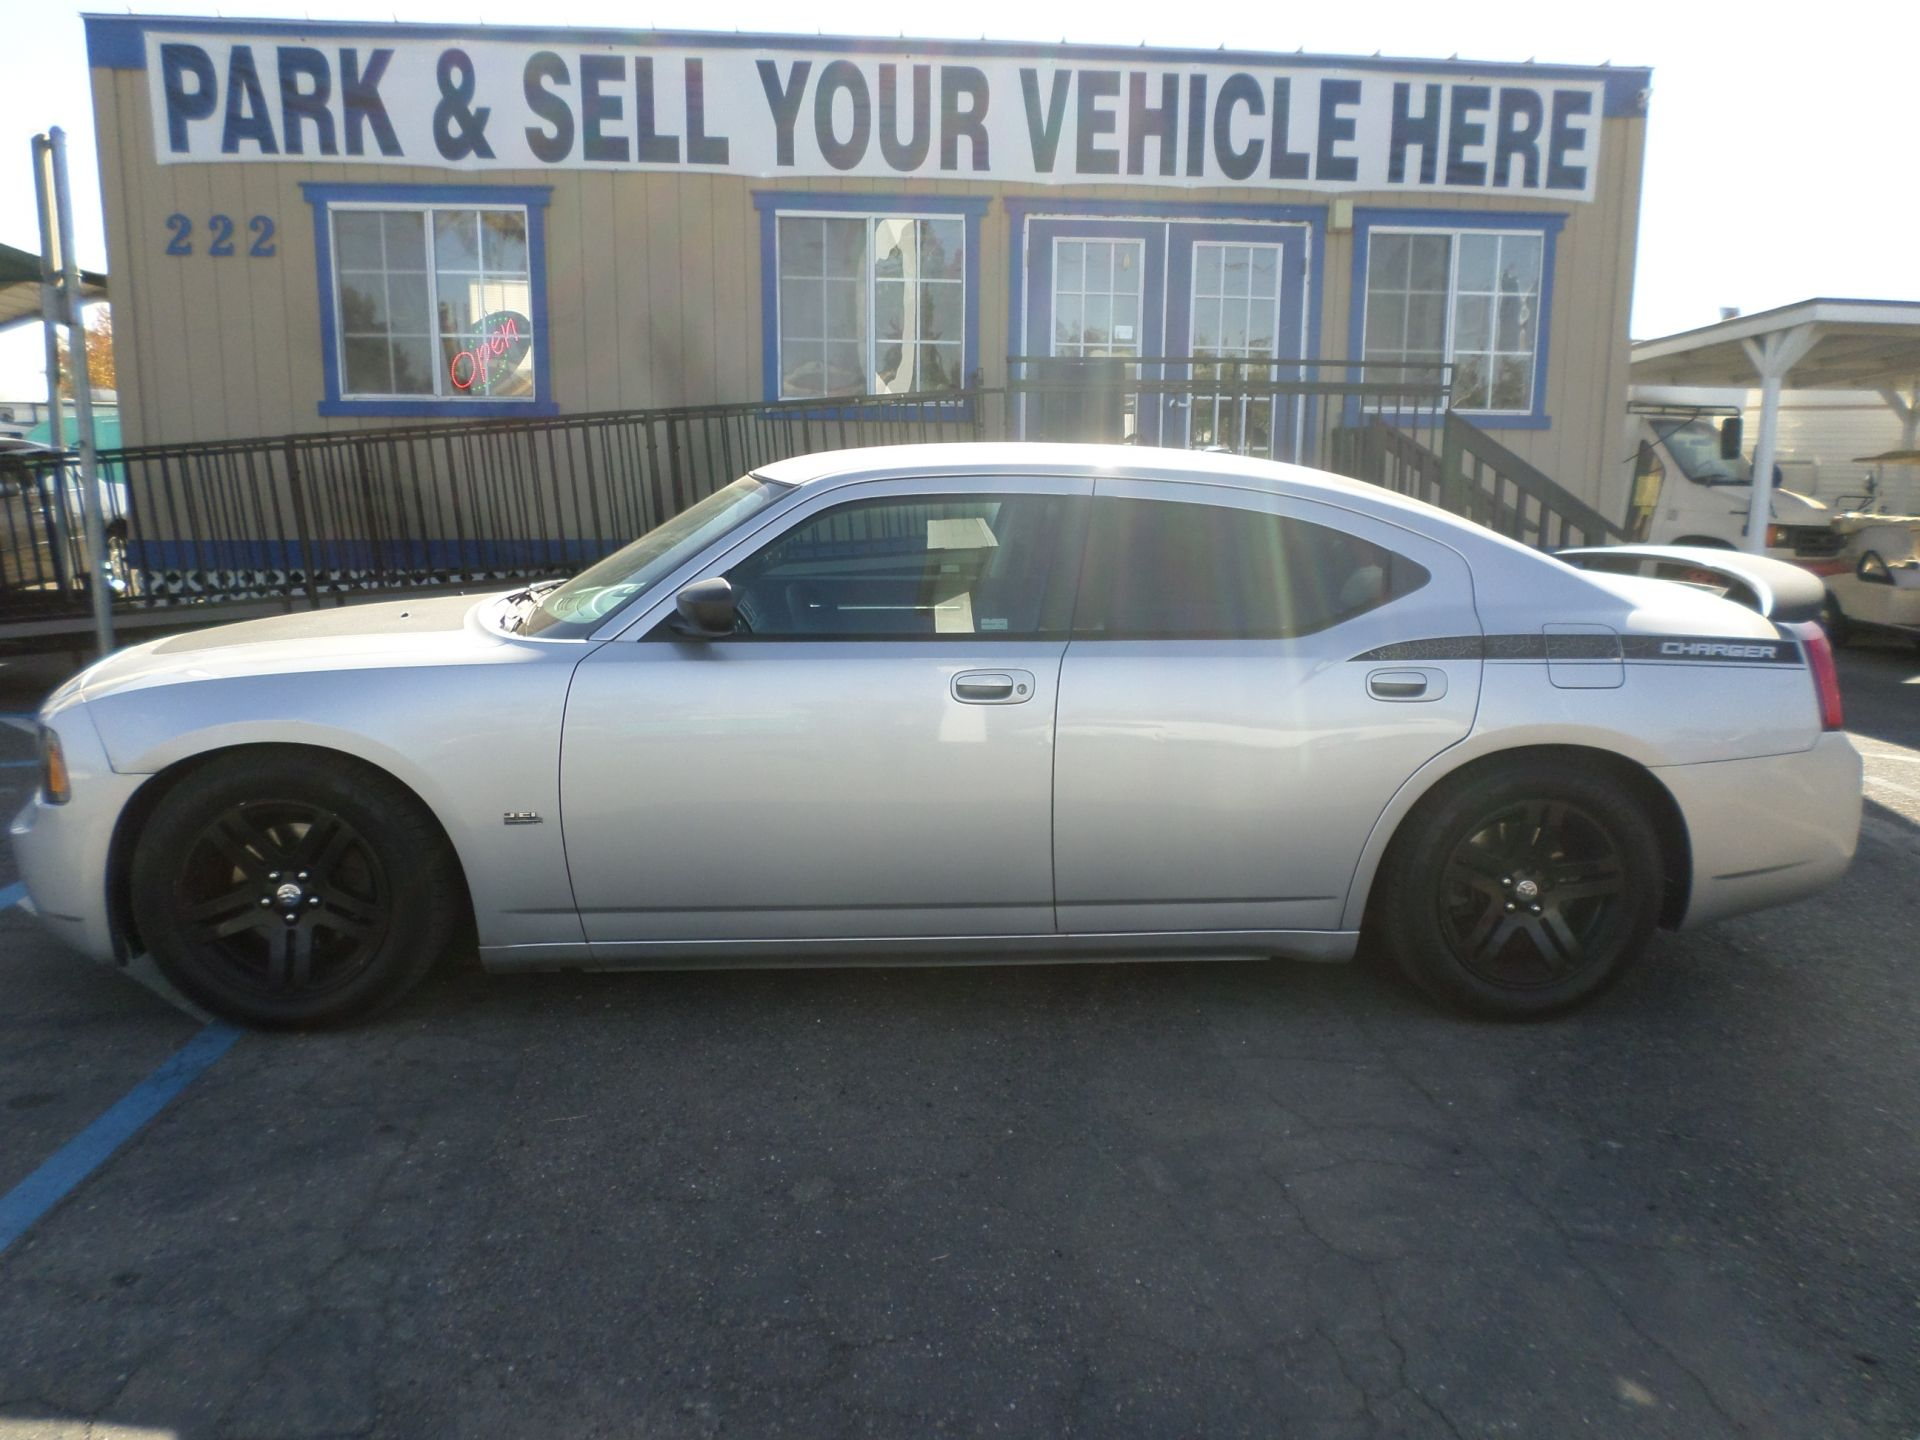 Car For Sale 2009 Dodge Charger Sxt In Lodi Stockton Ca Dodge Charger Charger Sxt Dodge Charger Sxt